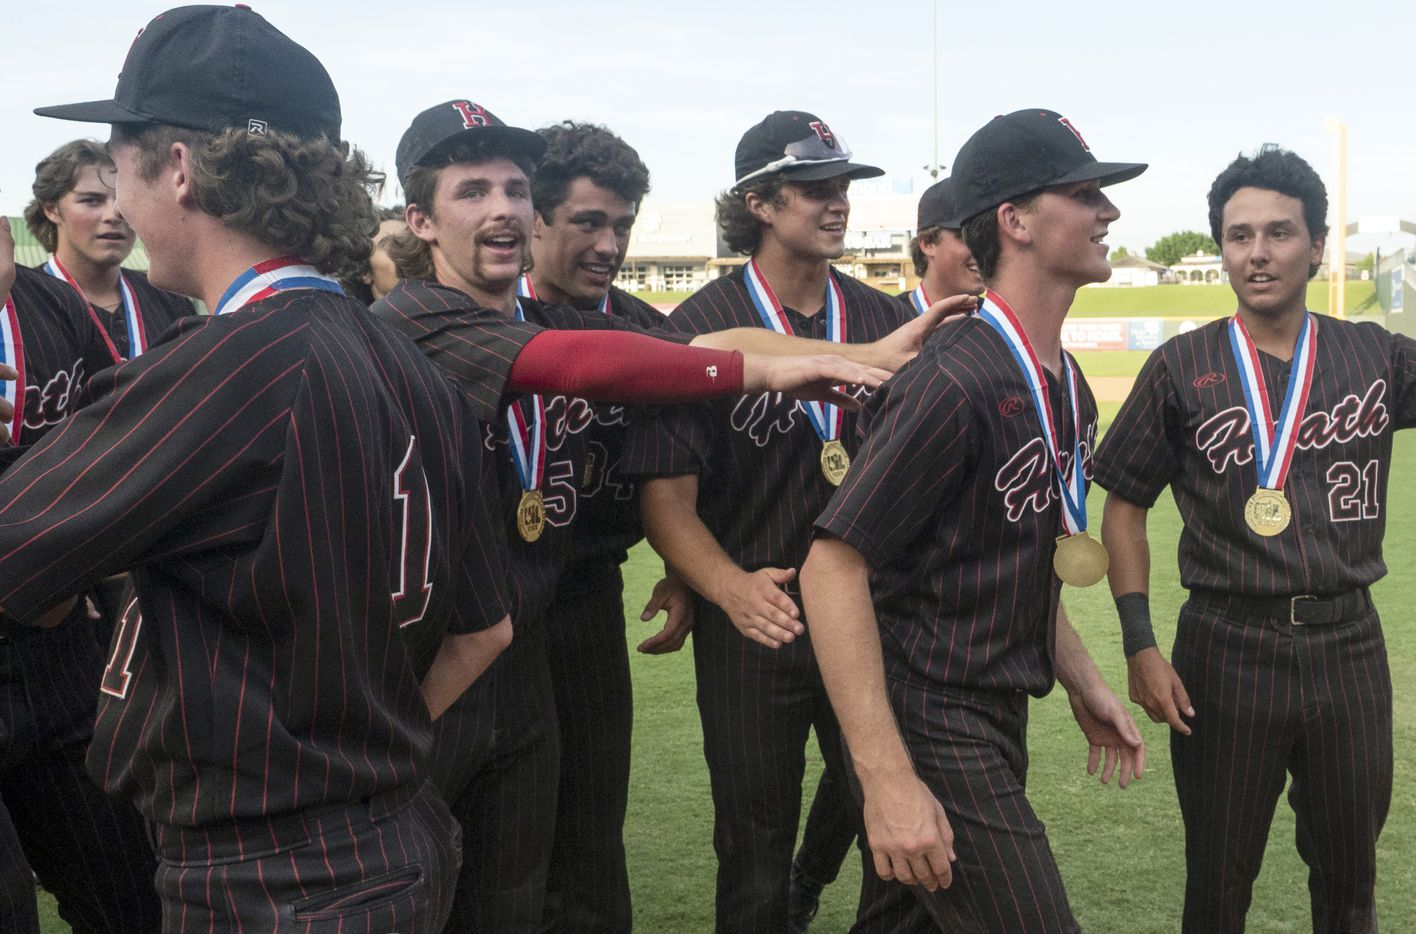 Tournament MVP Rockwall-Heath Caden Fiveash, (16), is pushed by teammates towards home plate to receive his award after the team defeated Keller in the 2021 UIL 6A state baseball final held, Saturday, June 12, 2021, in Round Rock, Texas.  Rockwall-Heath defeated Keller 4-3.   (Rodolfo Gonzalez/Special Contributor)